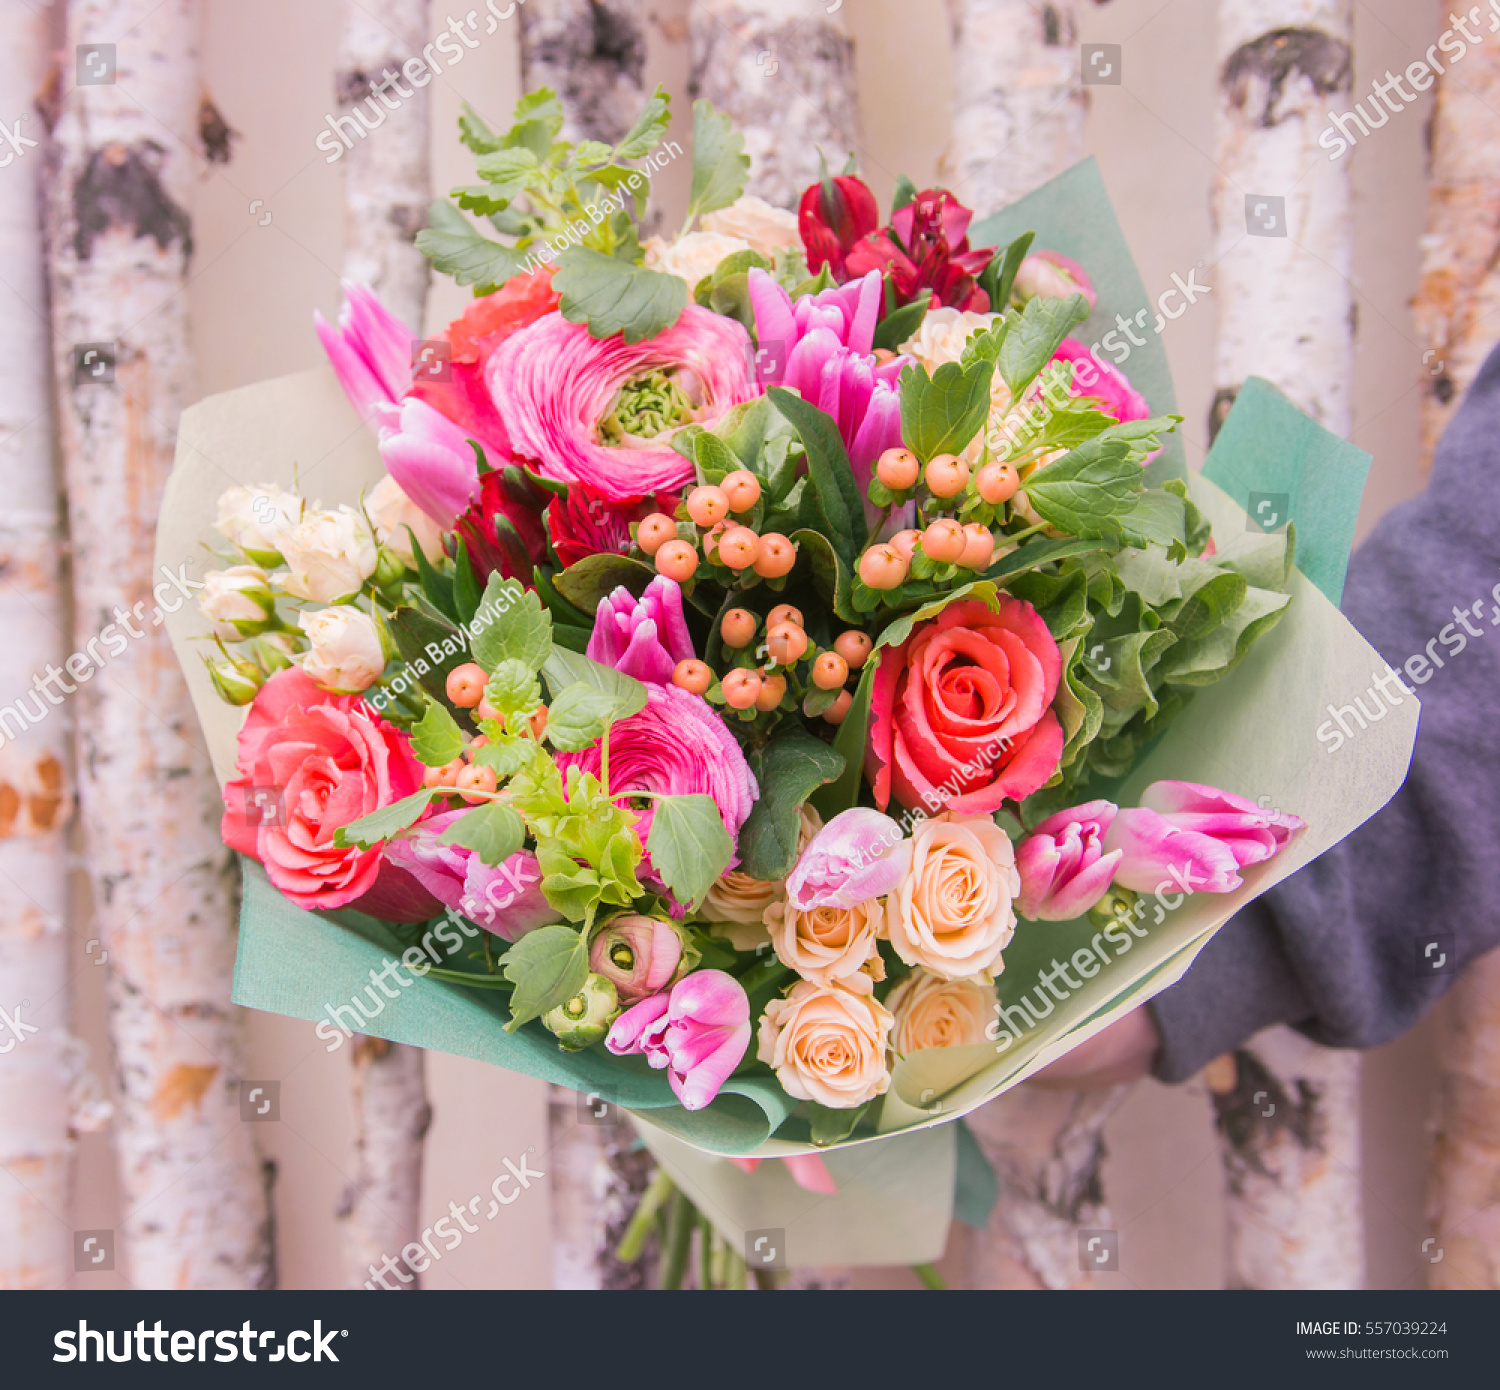 Beautiful flowers roses buttercups tulips alstroemeria stock photo beautiful flowers roses buttercups tulips alstroemeria beautiful bouquet of different flowers izmirmasajfo